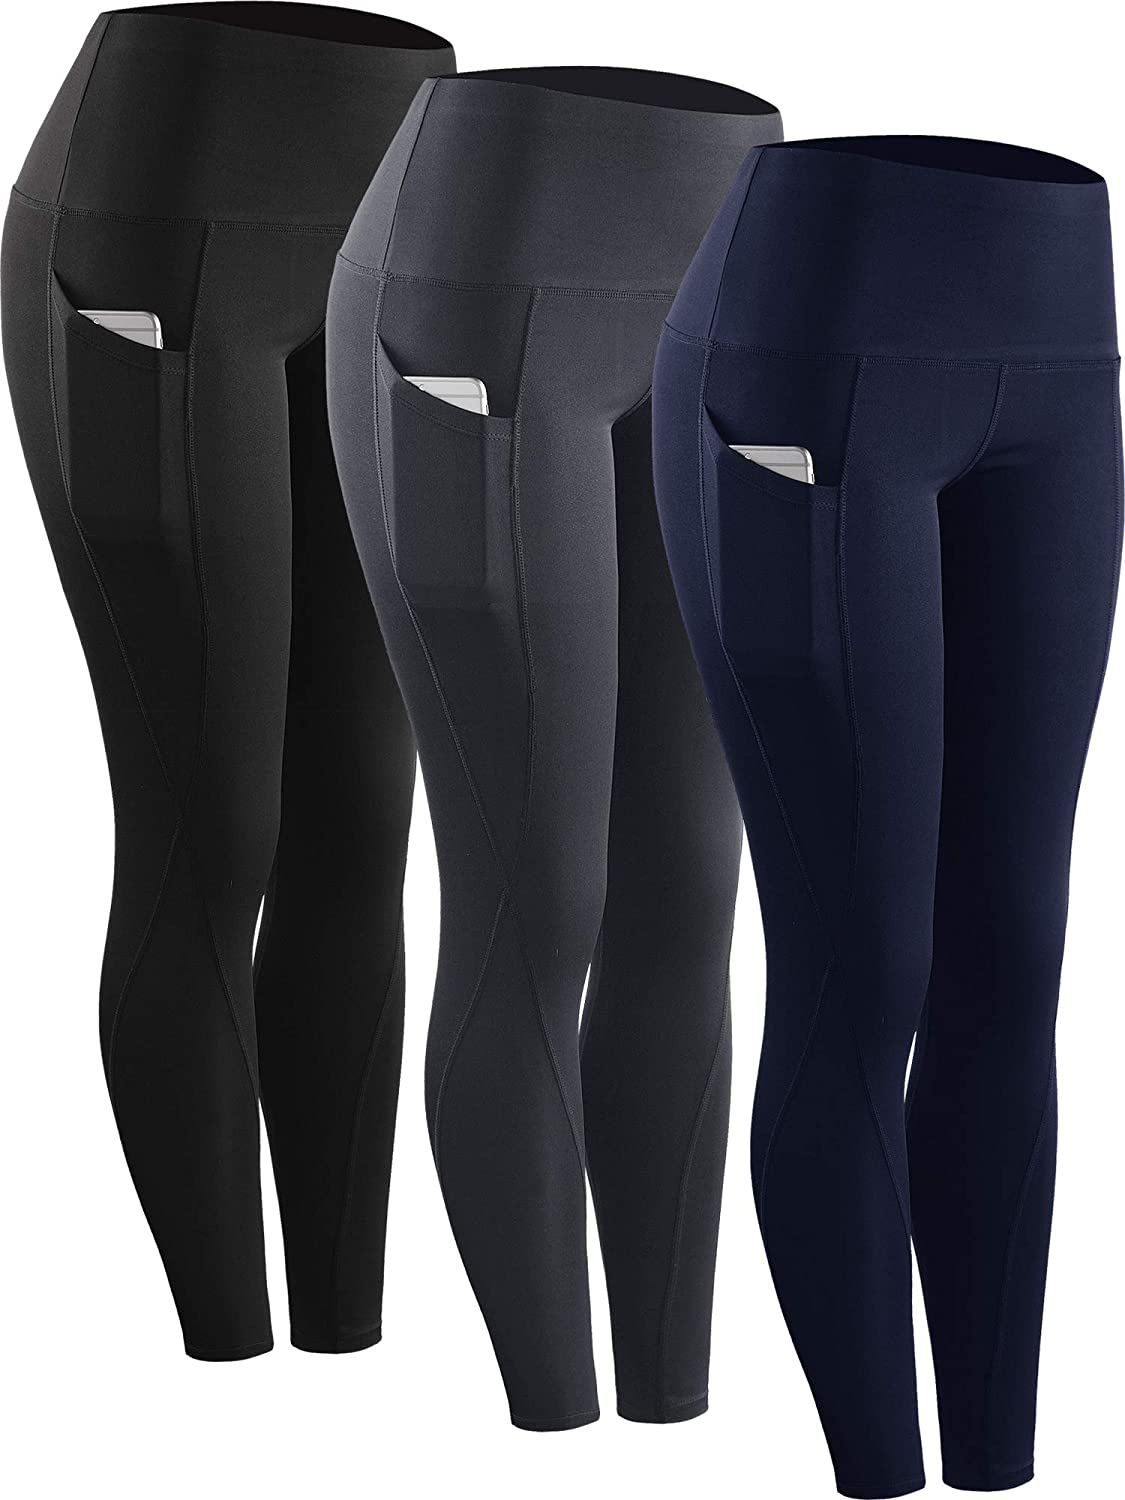 Genuine Neleus High Waist Running Workout Raleigh Mall for with Yoga Pockets Leggings